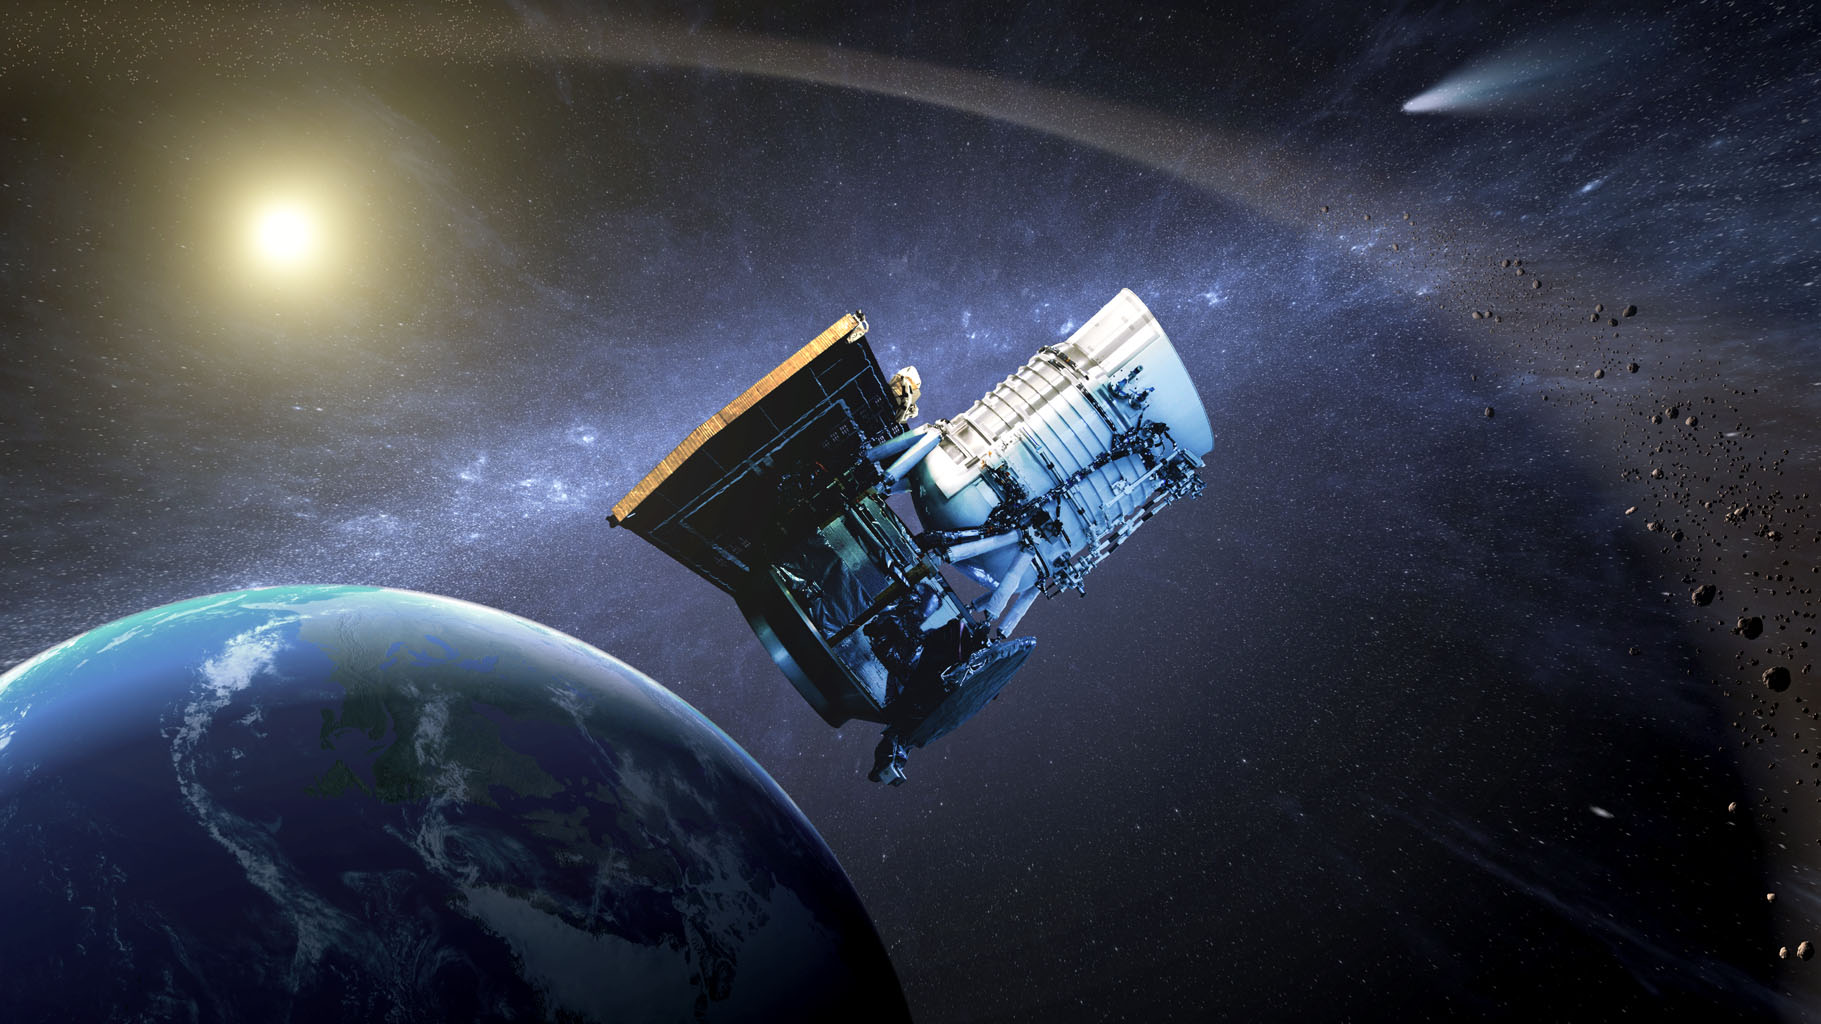 NEOWISE spacecraft